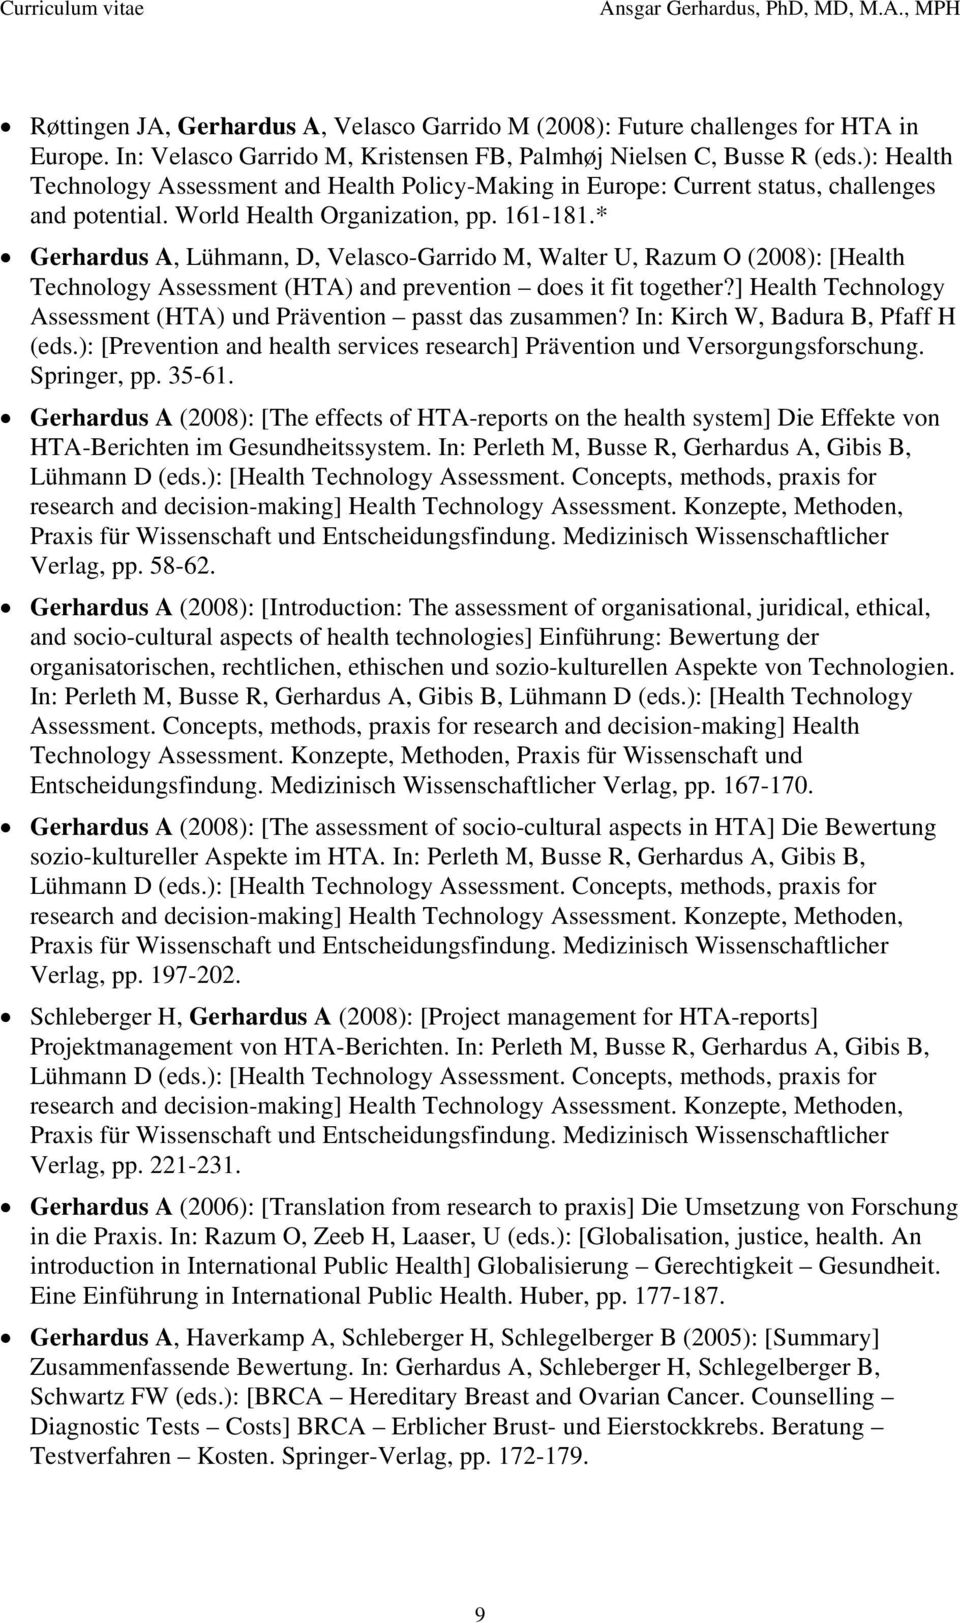 * Gerhardus A, Lühmann, D, Velasco-Garrido M, Walter U, Razum O (2008): [Health Technology Assessment (HTA) and prevention does it fit together?